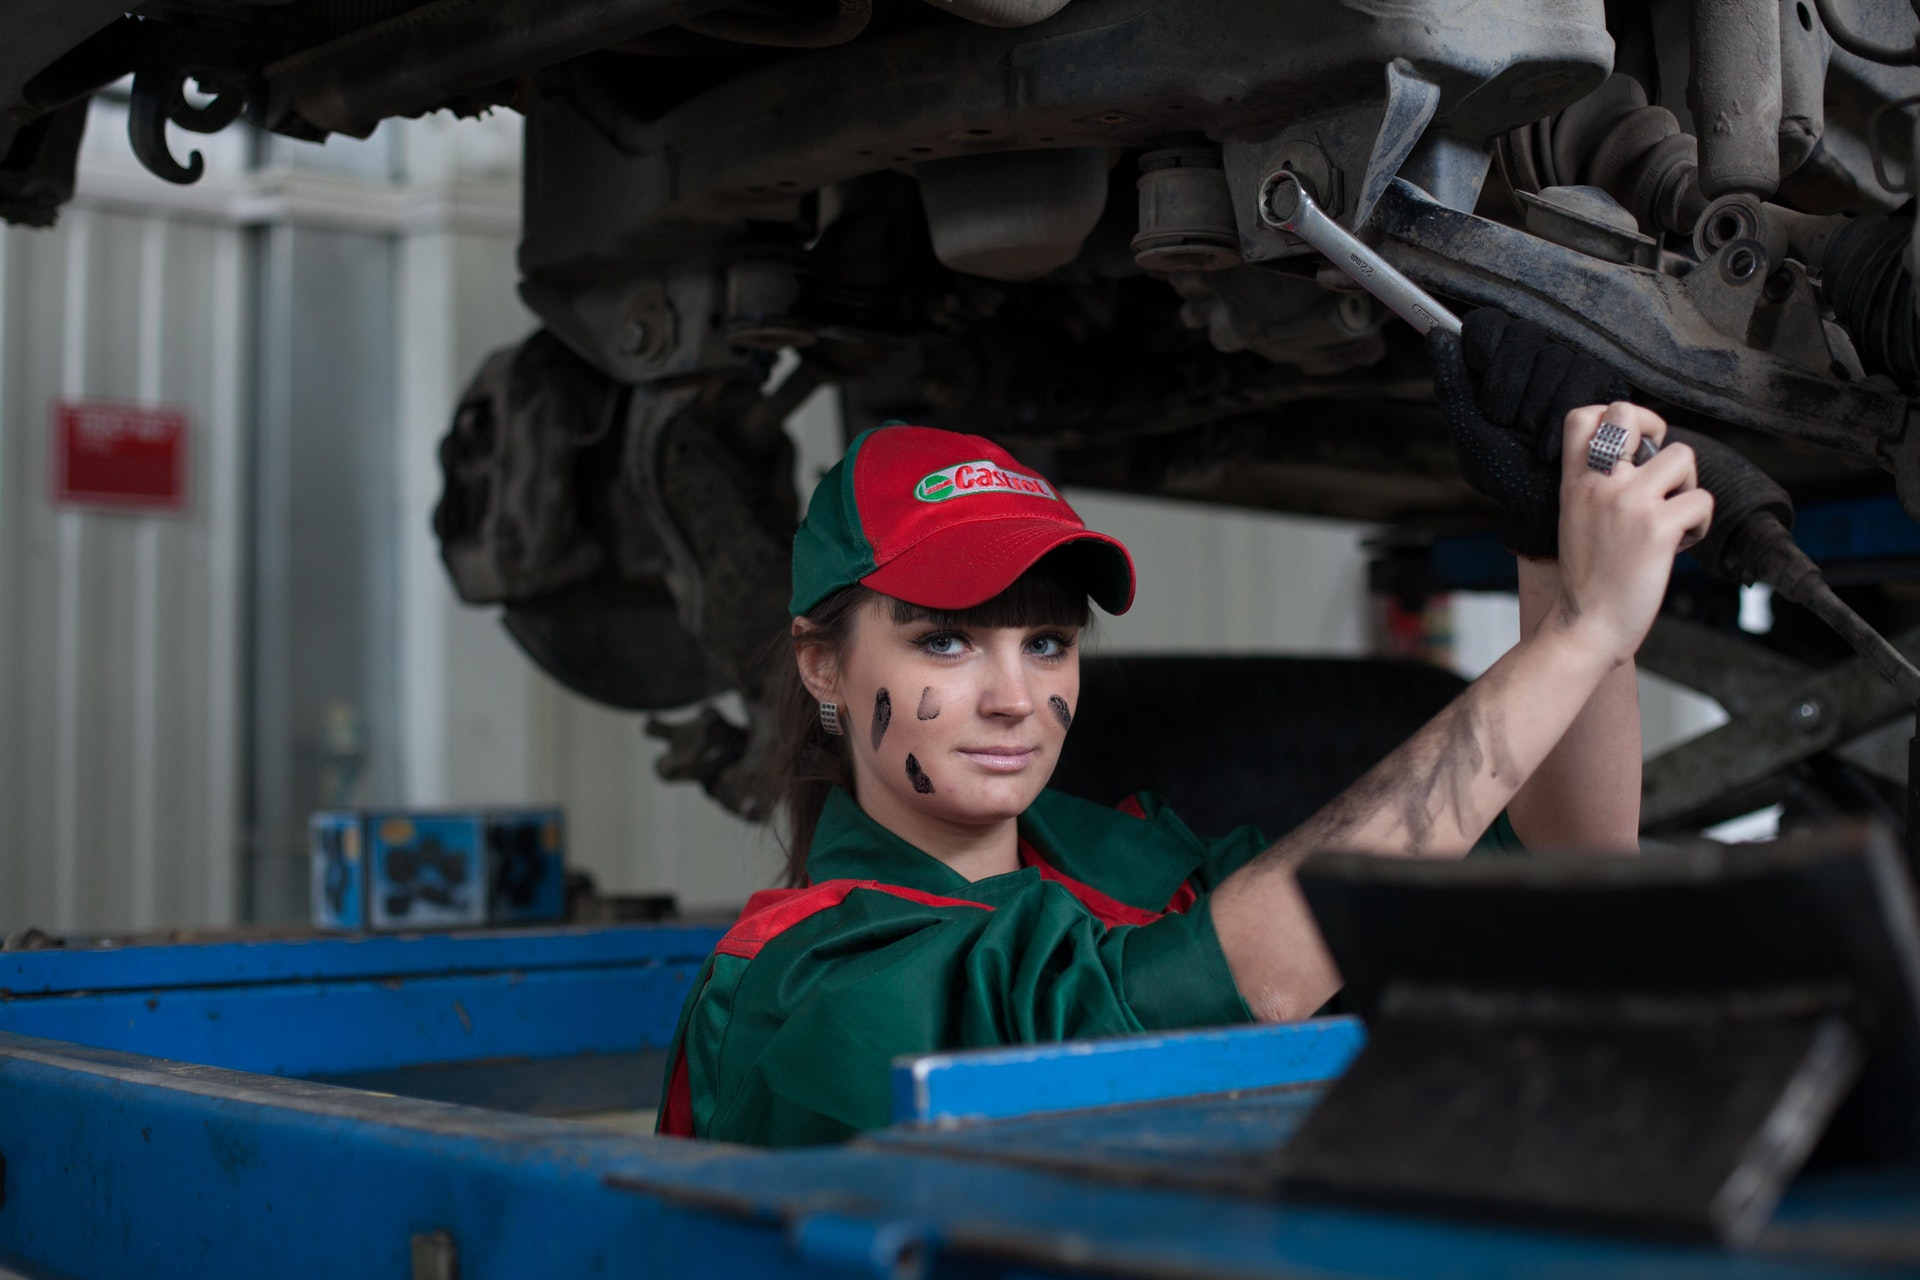 Female Car Mechanic